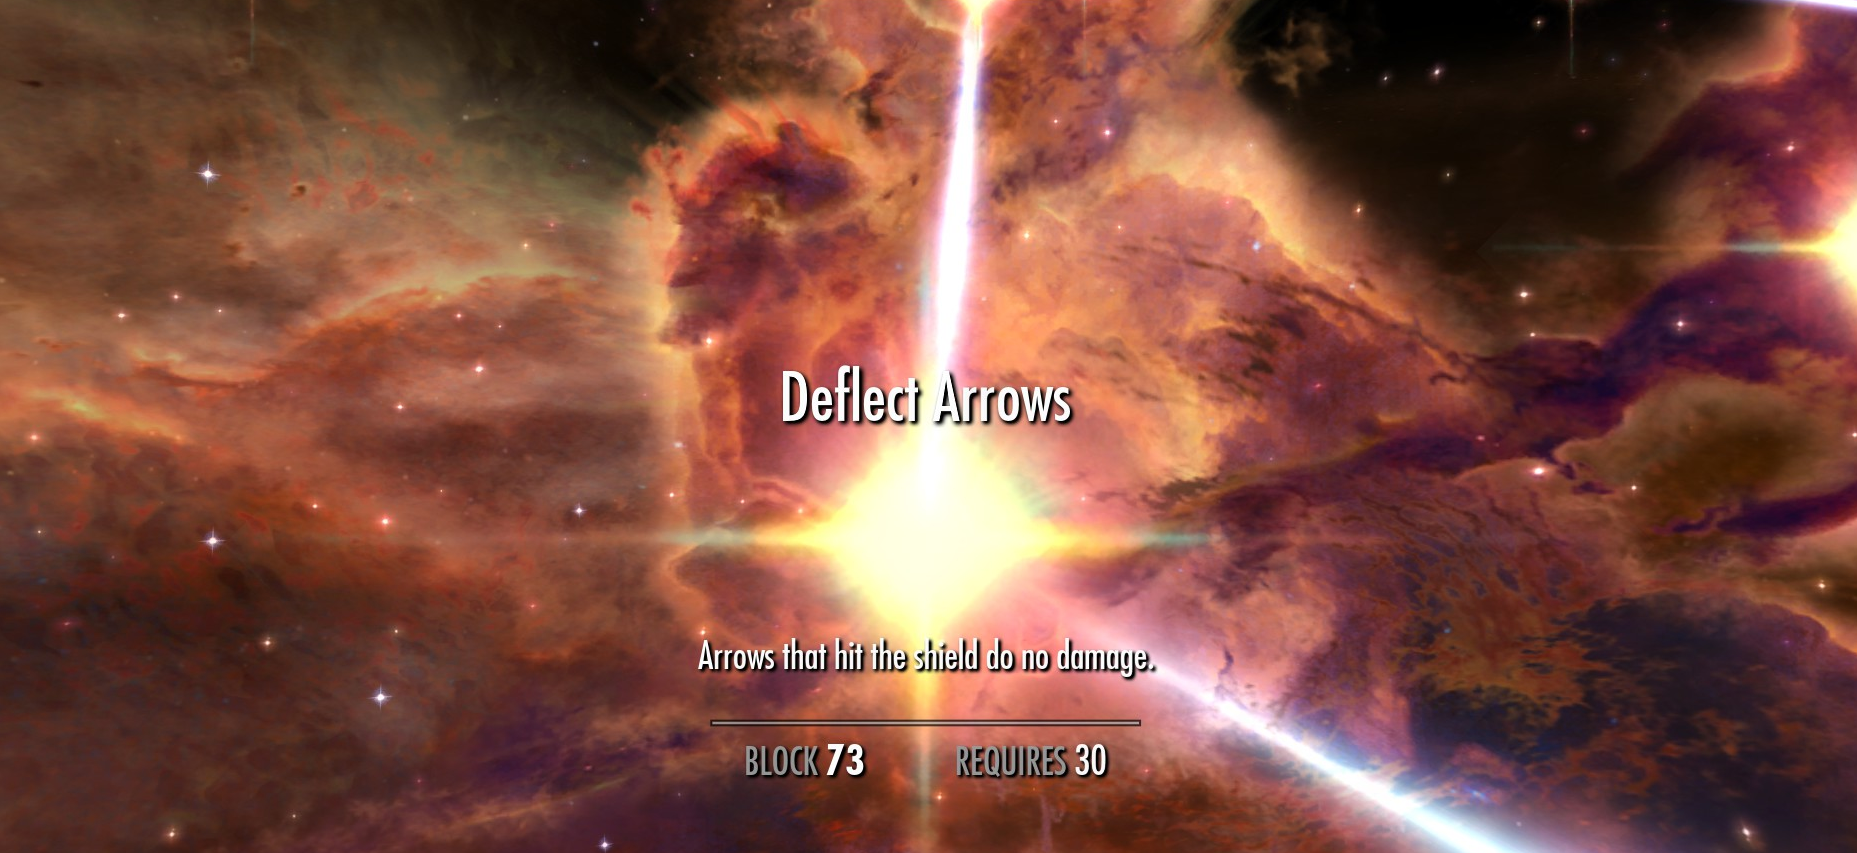 Deflect Arrows